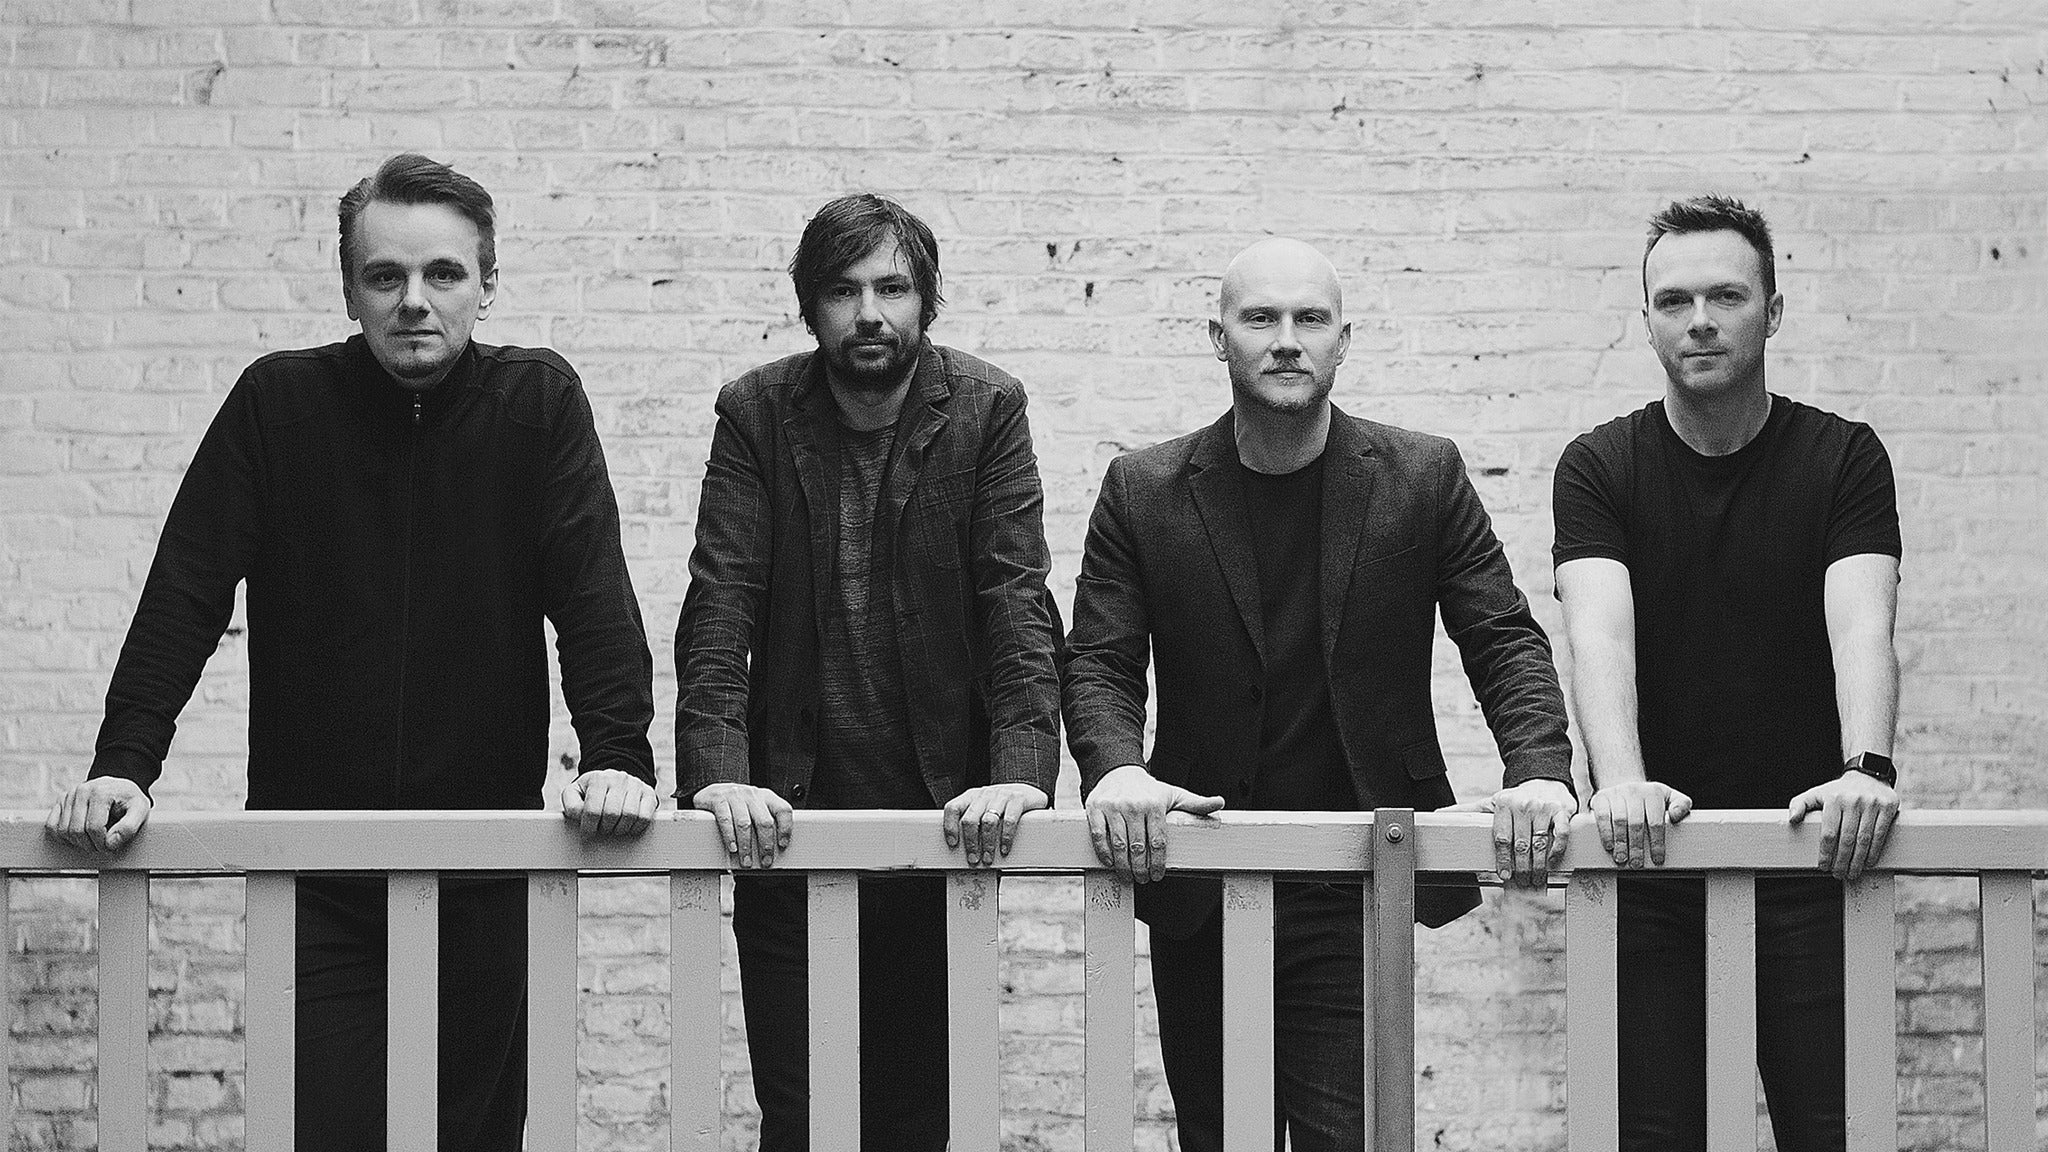 The Pineapple Thief Featuring Gavin Harrison w/ Special Guests pre-sale passcode for show tickets in Montréal, QC (L'Astral)